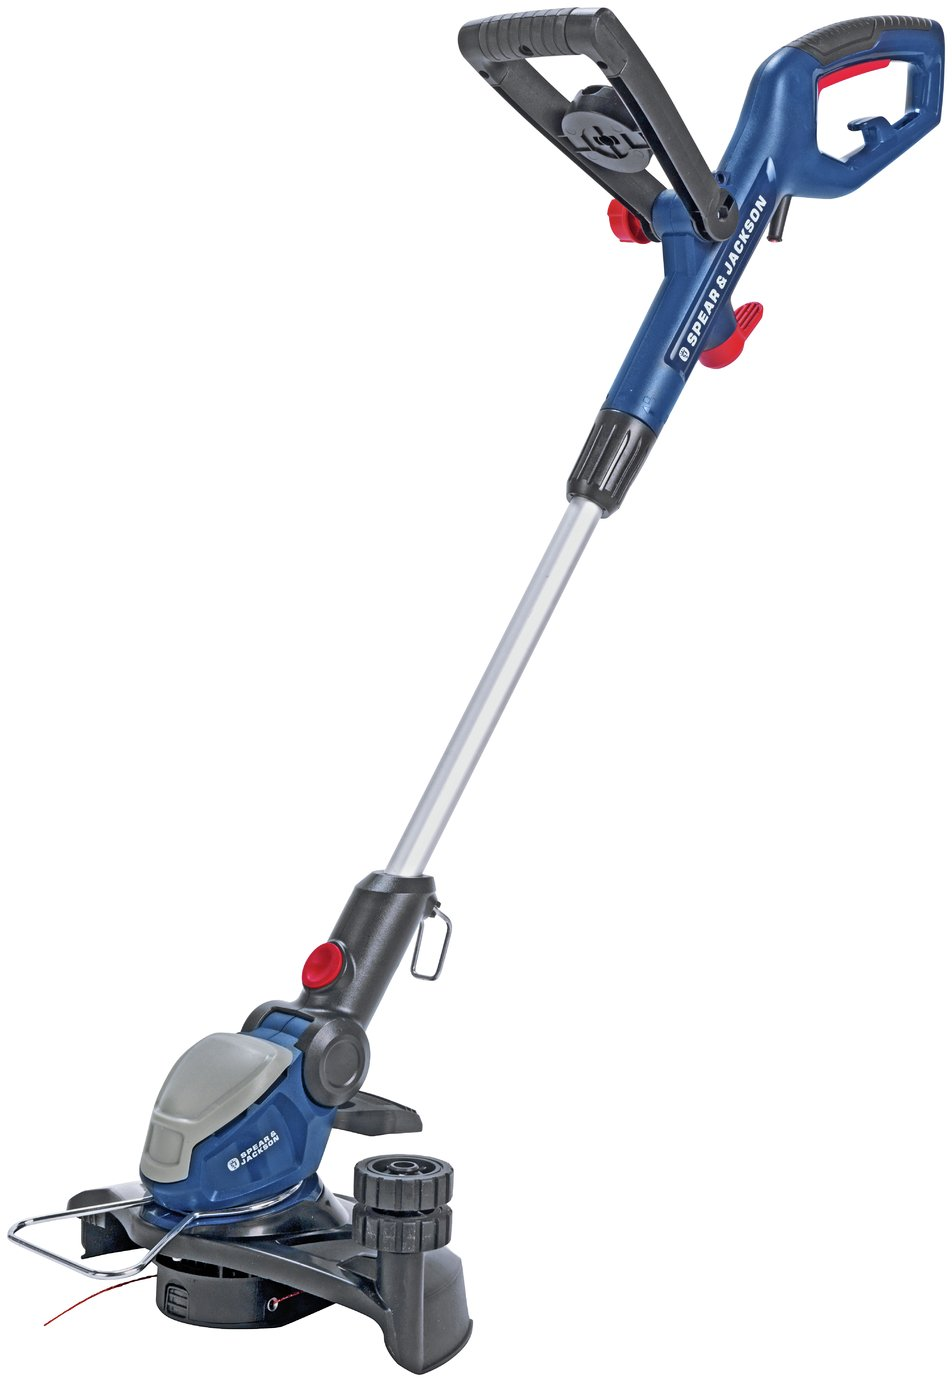 Spear & Jackson S6030ET 30cm Corded Grass Trimmer - 600W